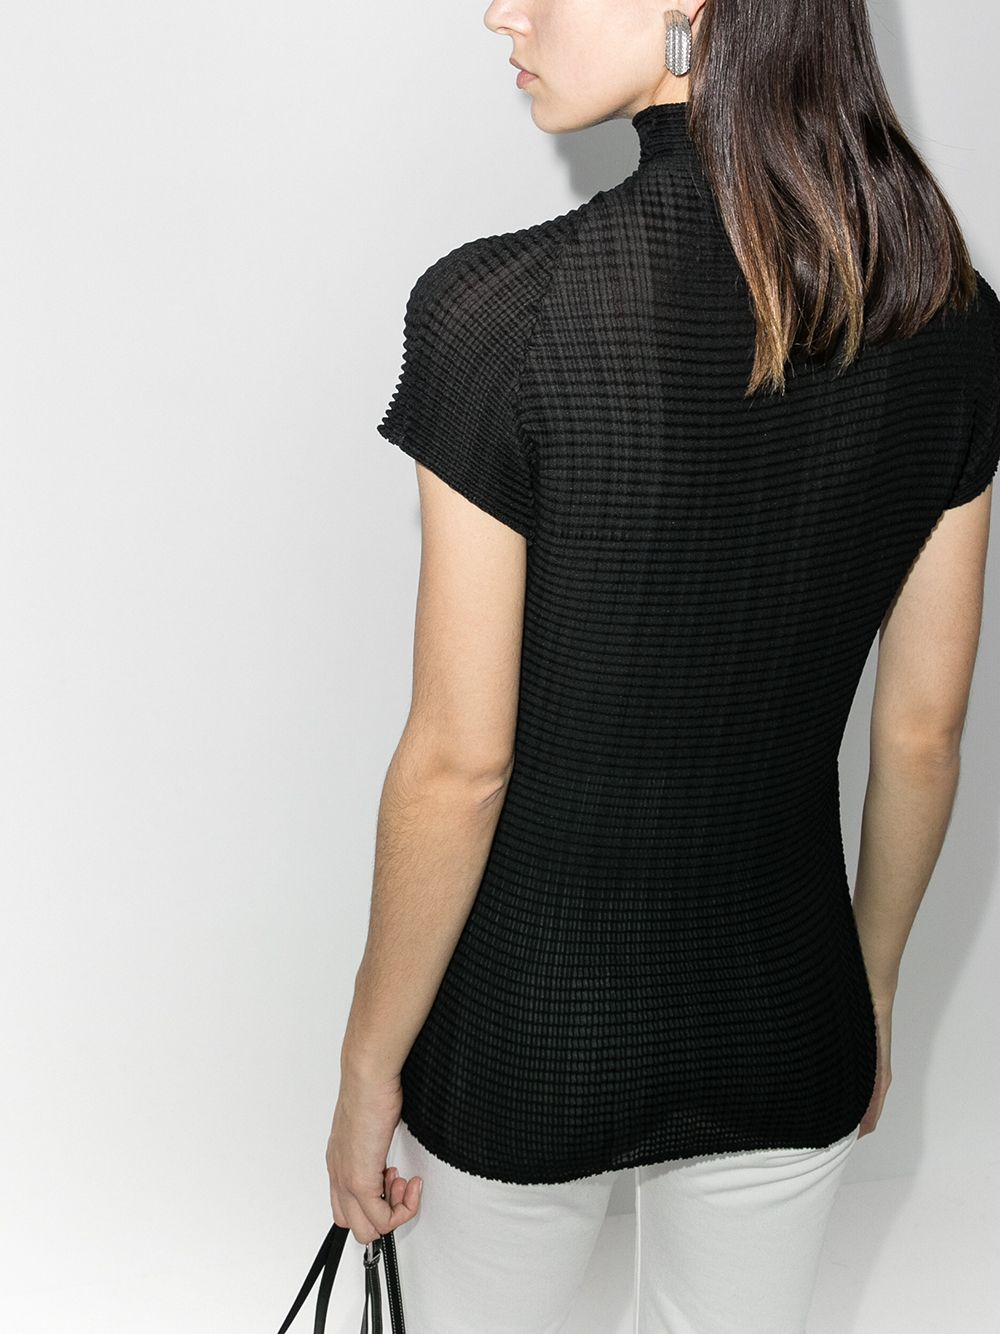 ISSEY MIYAKE WOMEN WOOLY PLEATS TOP